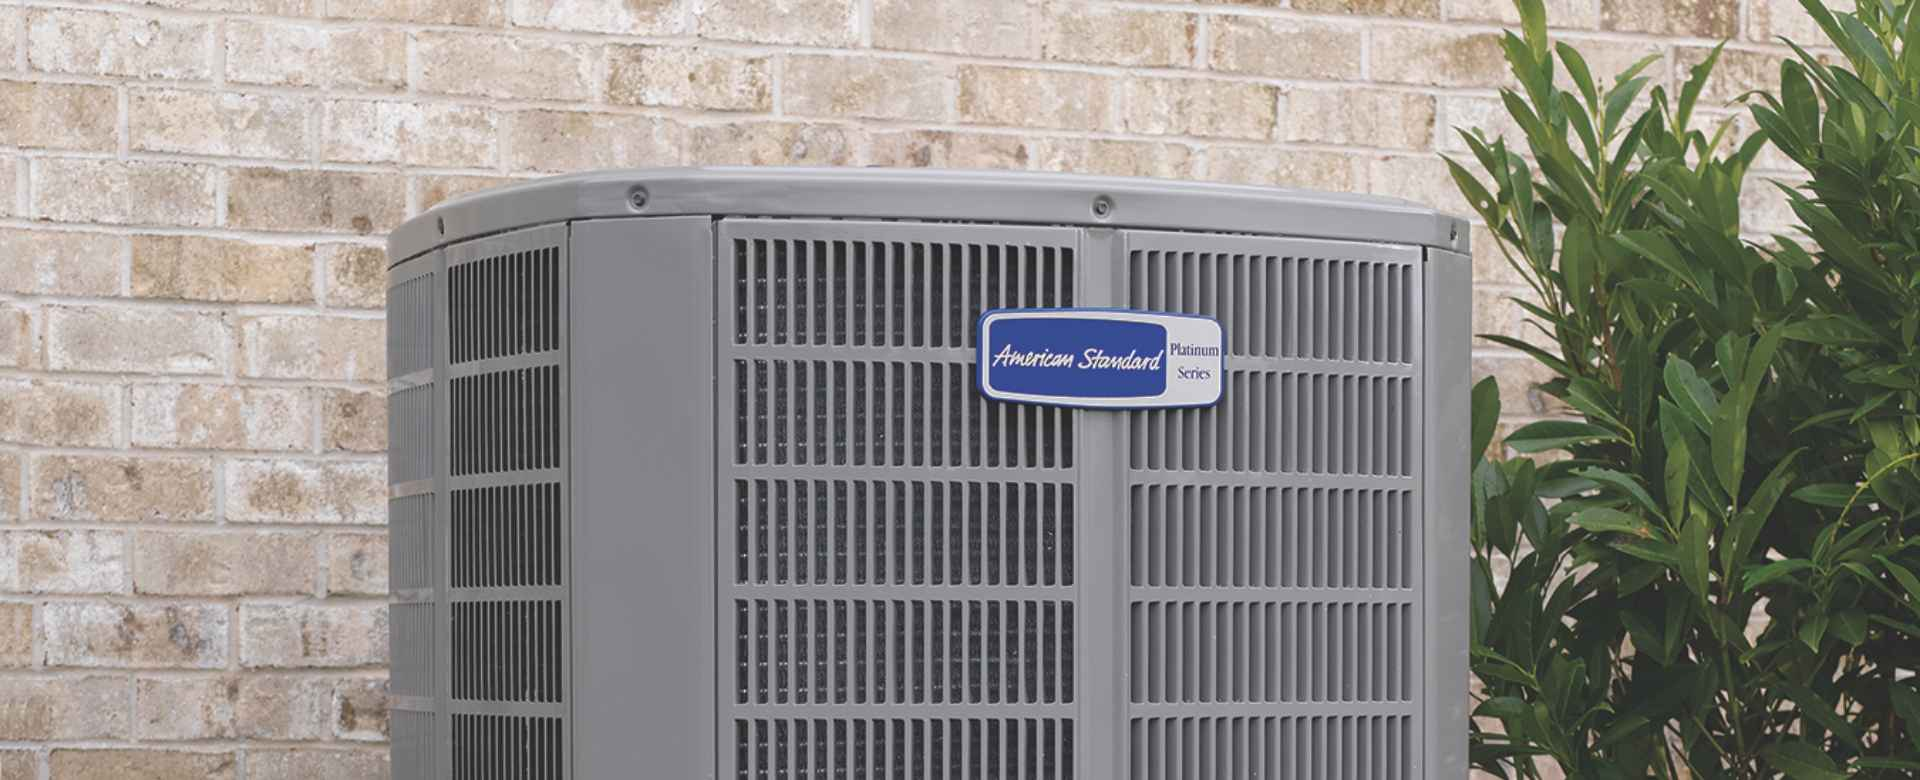 American Standard air conditioner unit in yard